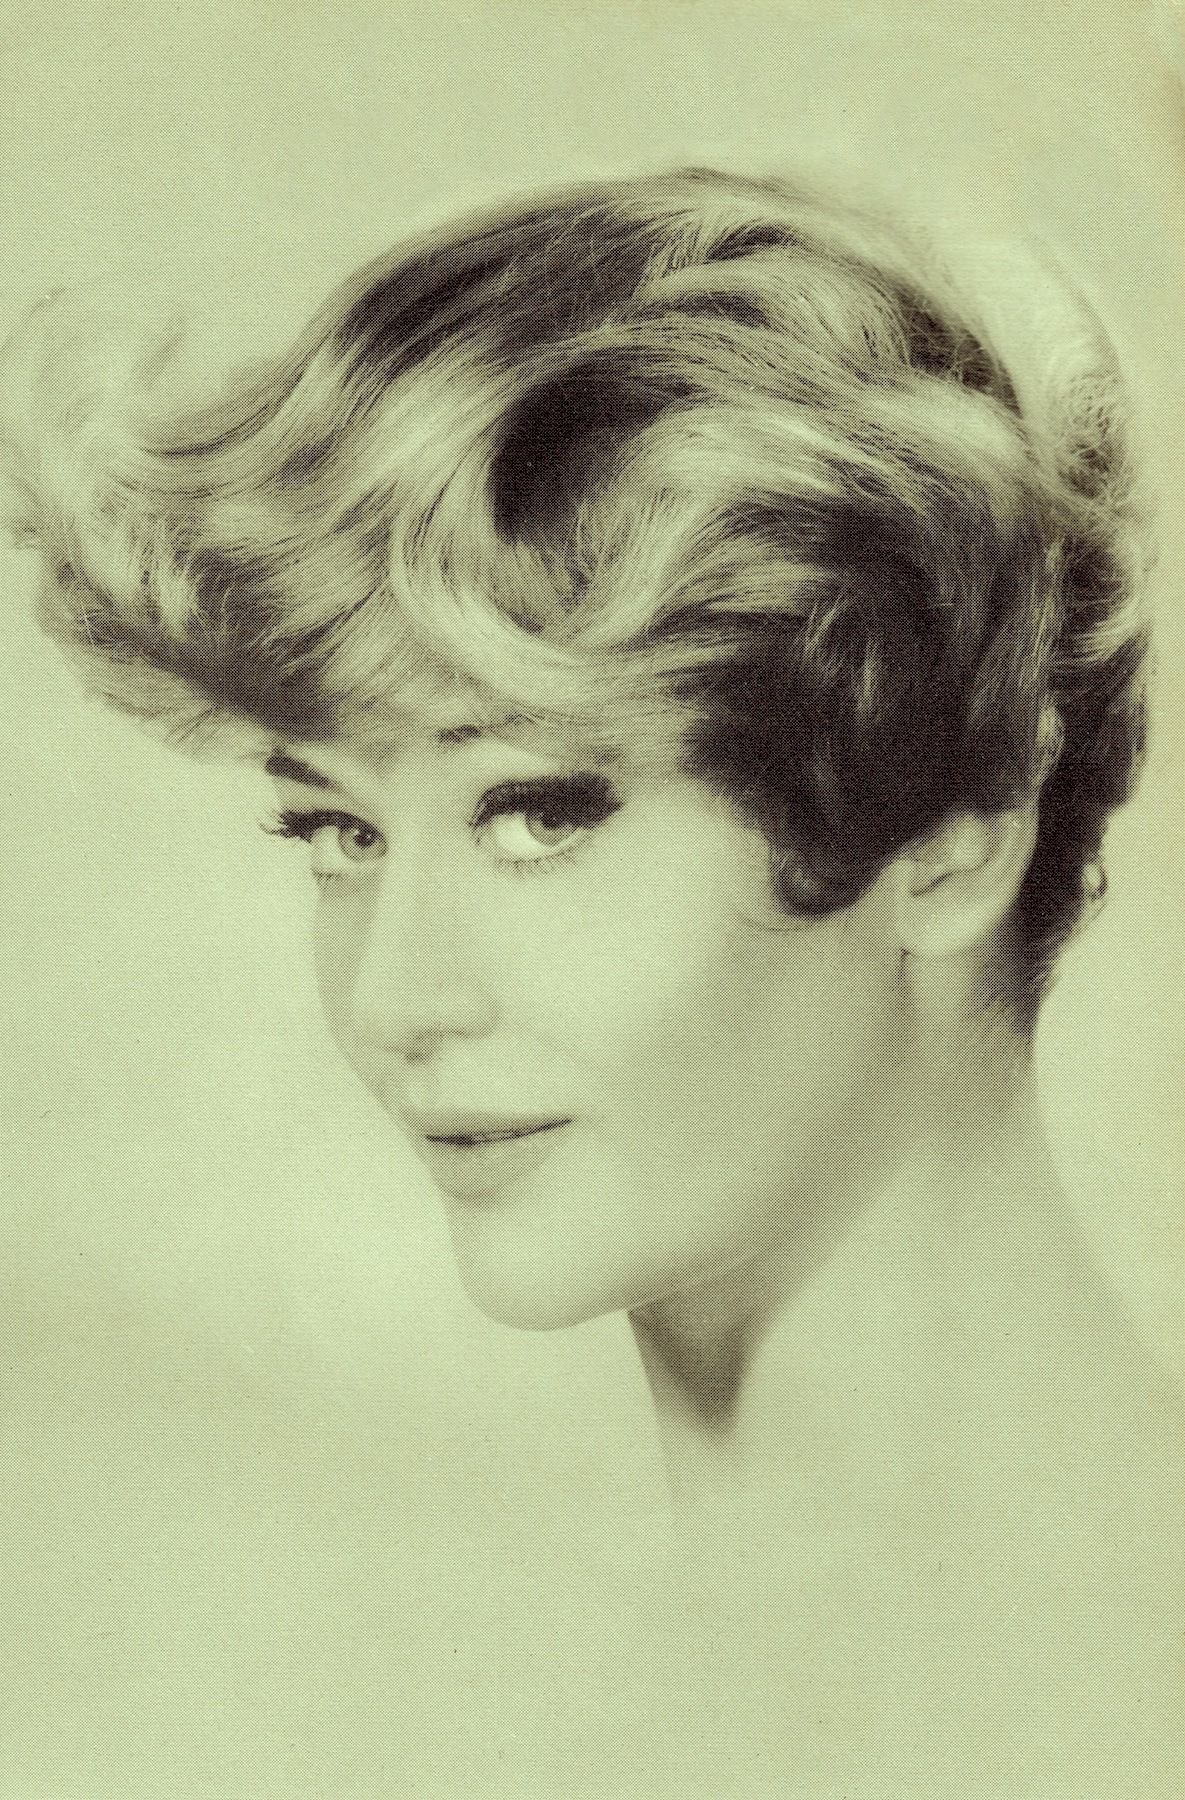 Coiffure 1960 60 39s Hairstyle From La Coiffure De Paris Magazine Avril